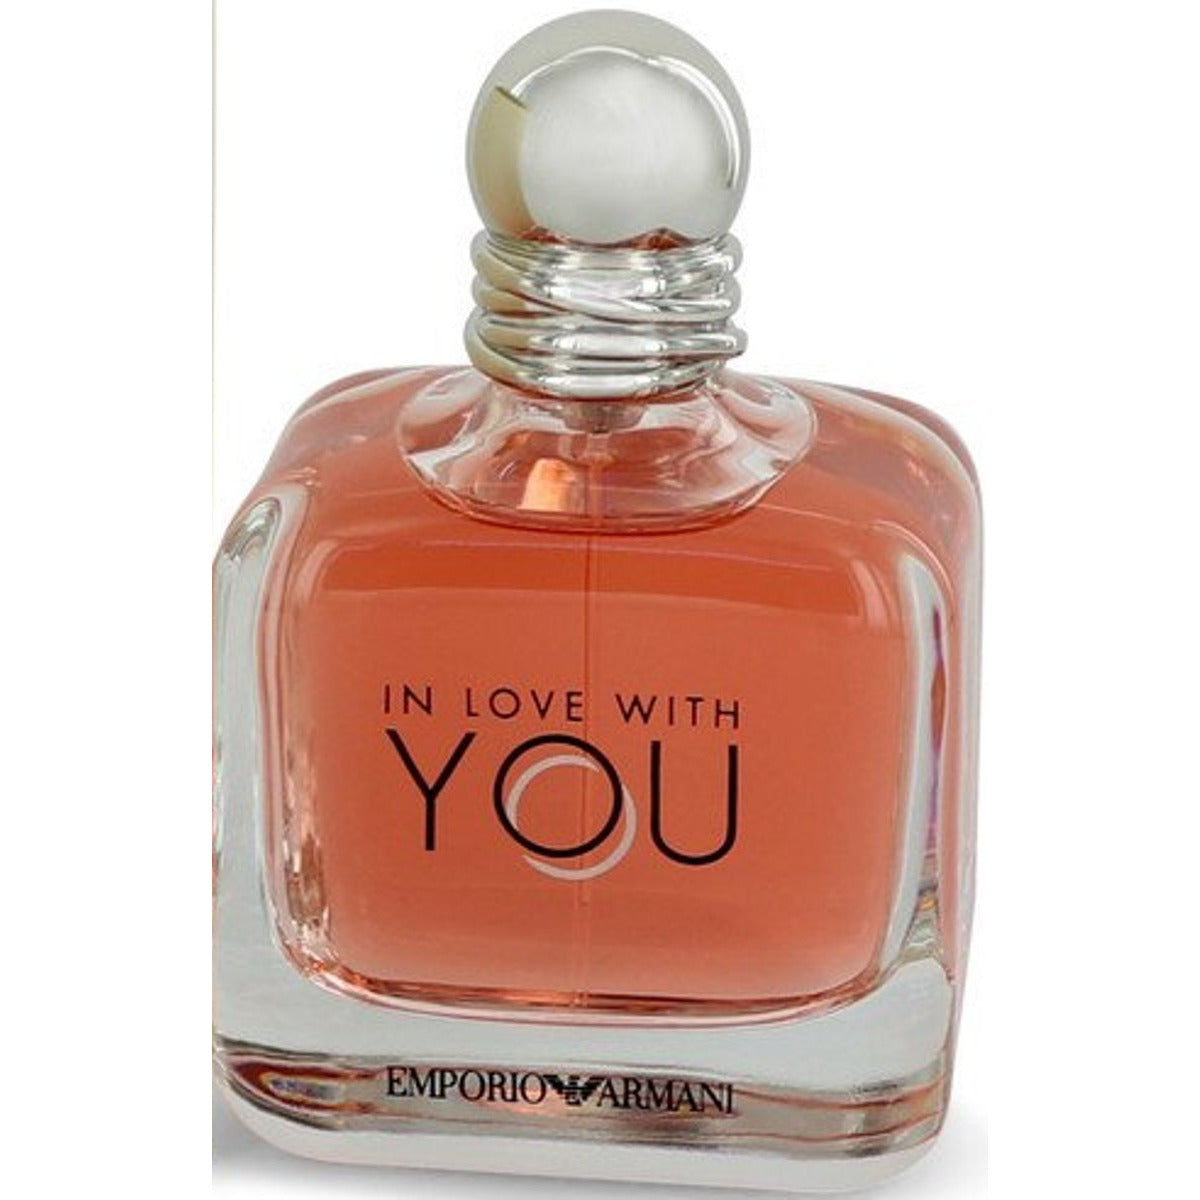 In love with you by Armani perfume women EDP 3.3 / 3.4 oz New Tester